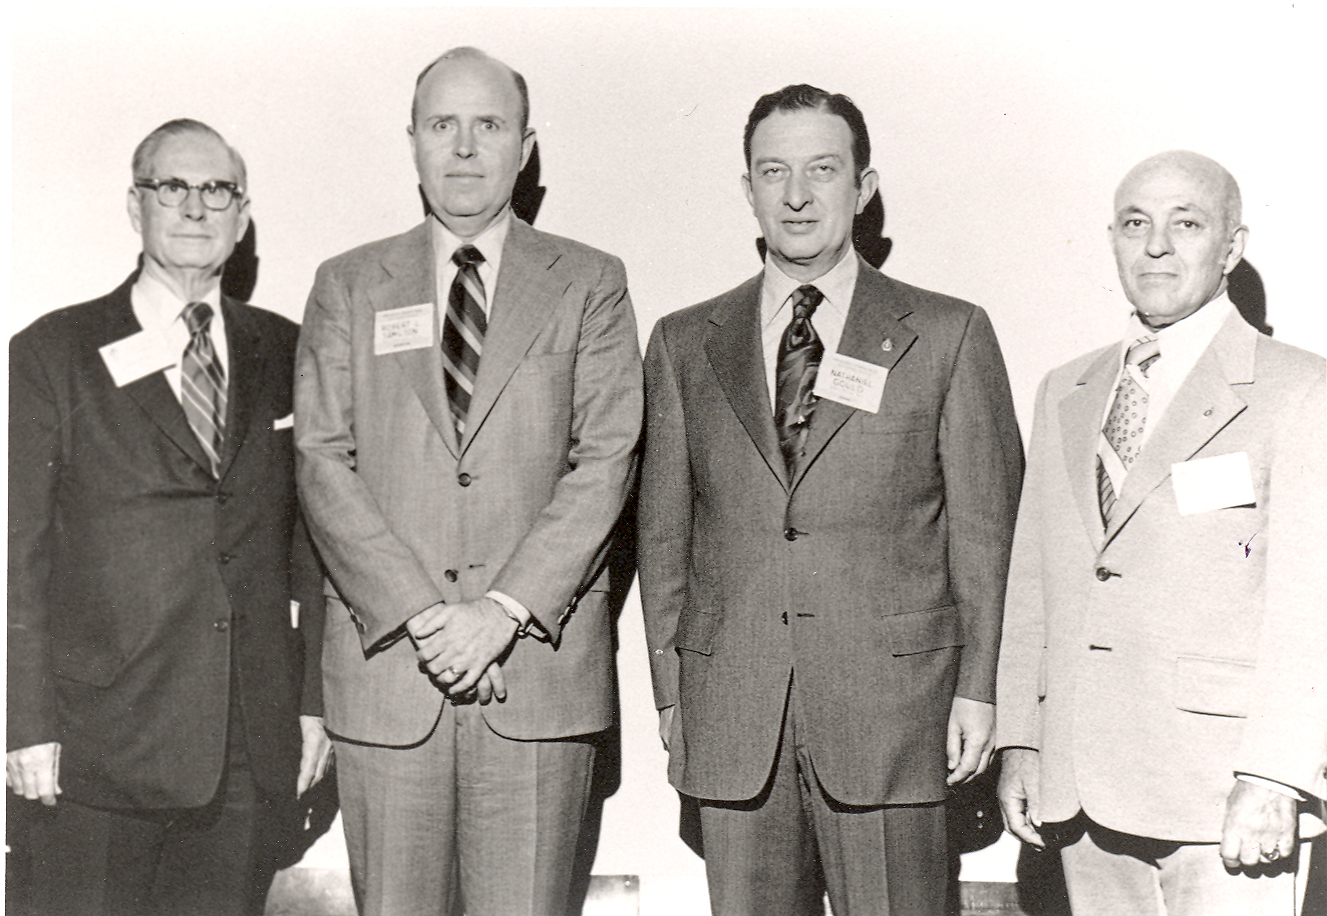 First four AOFAS presidents - Drs. Robert Joplin, Robert Samilson, Nathaniel Gould, and Nicholas Giannestras